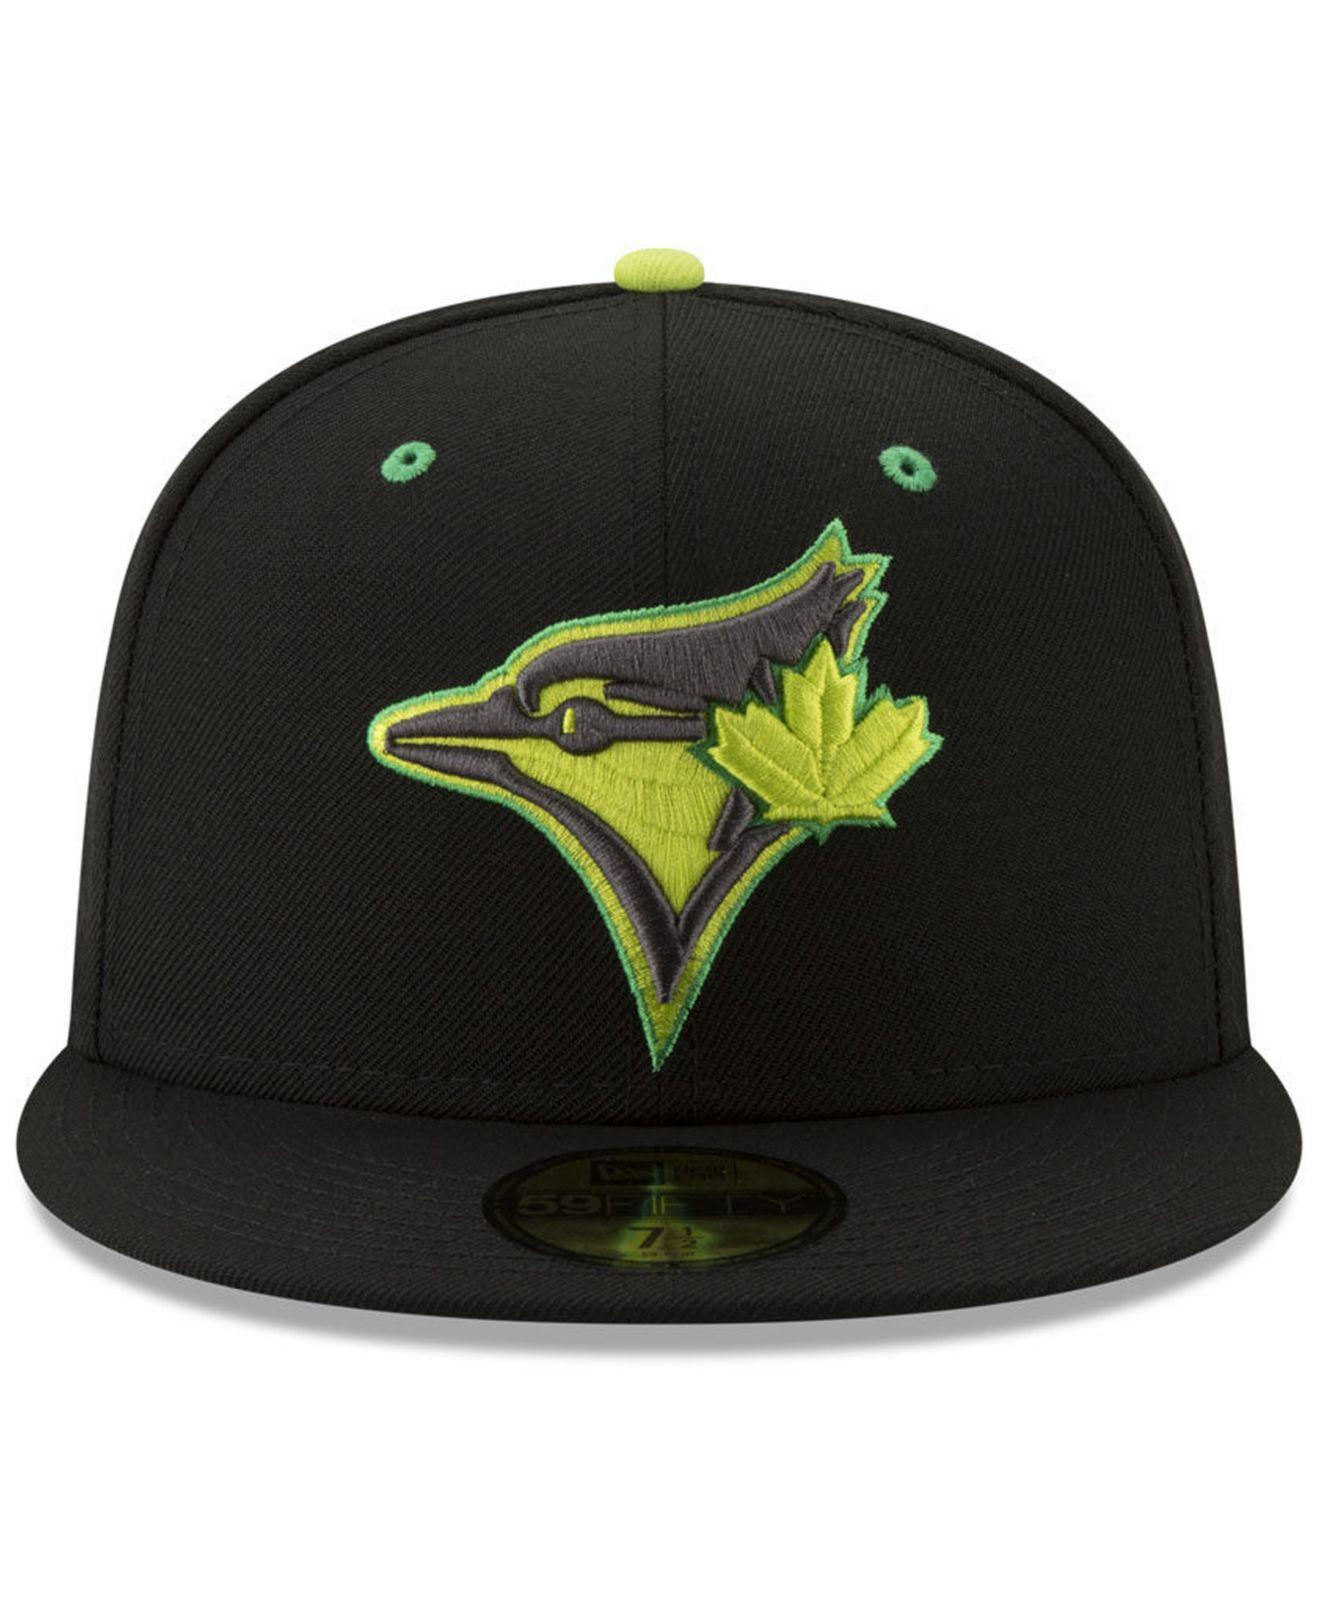 best website d2357 c4681 Lyst - KTZ Toronto Blue Jays Night Moves 59fifty Fitted Cap in Black for Men